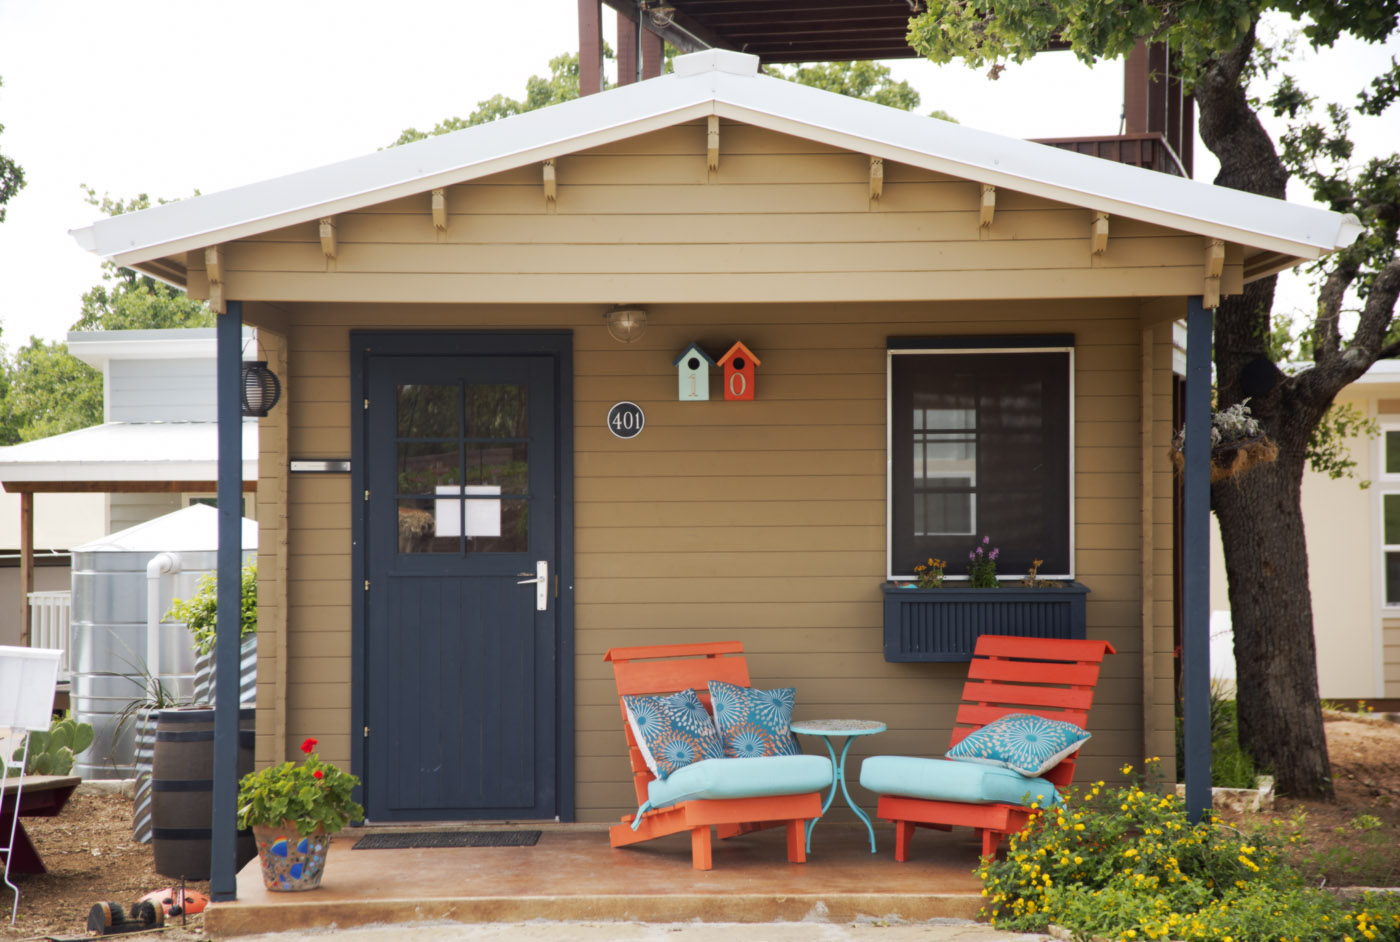 A brown tiny house with peaked roof, small porch, red chairs